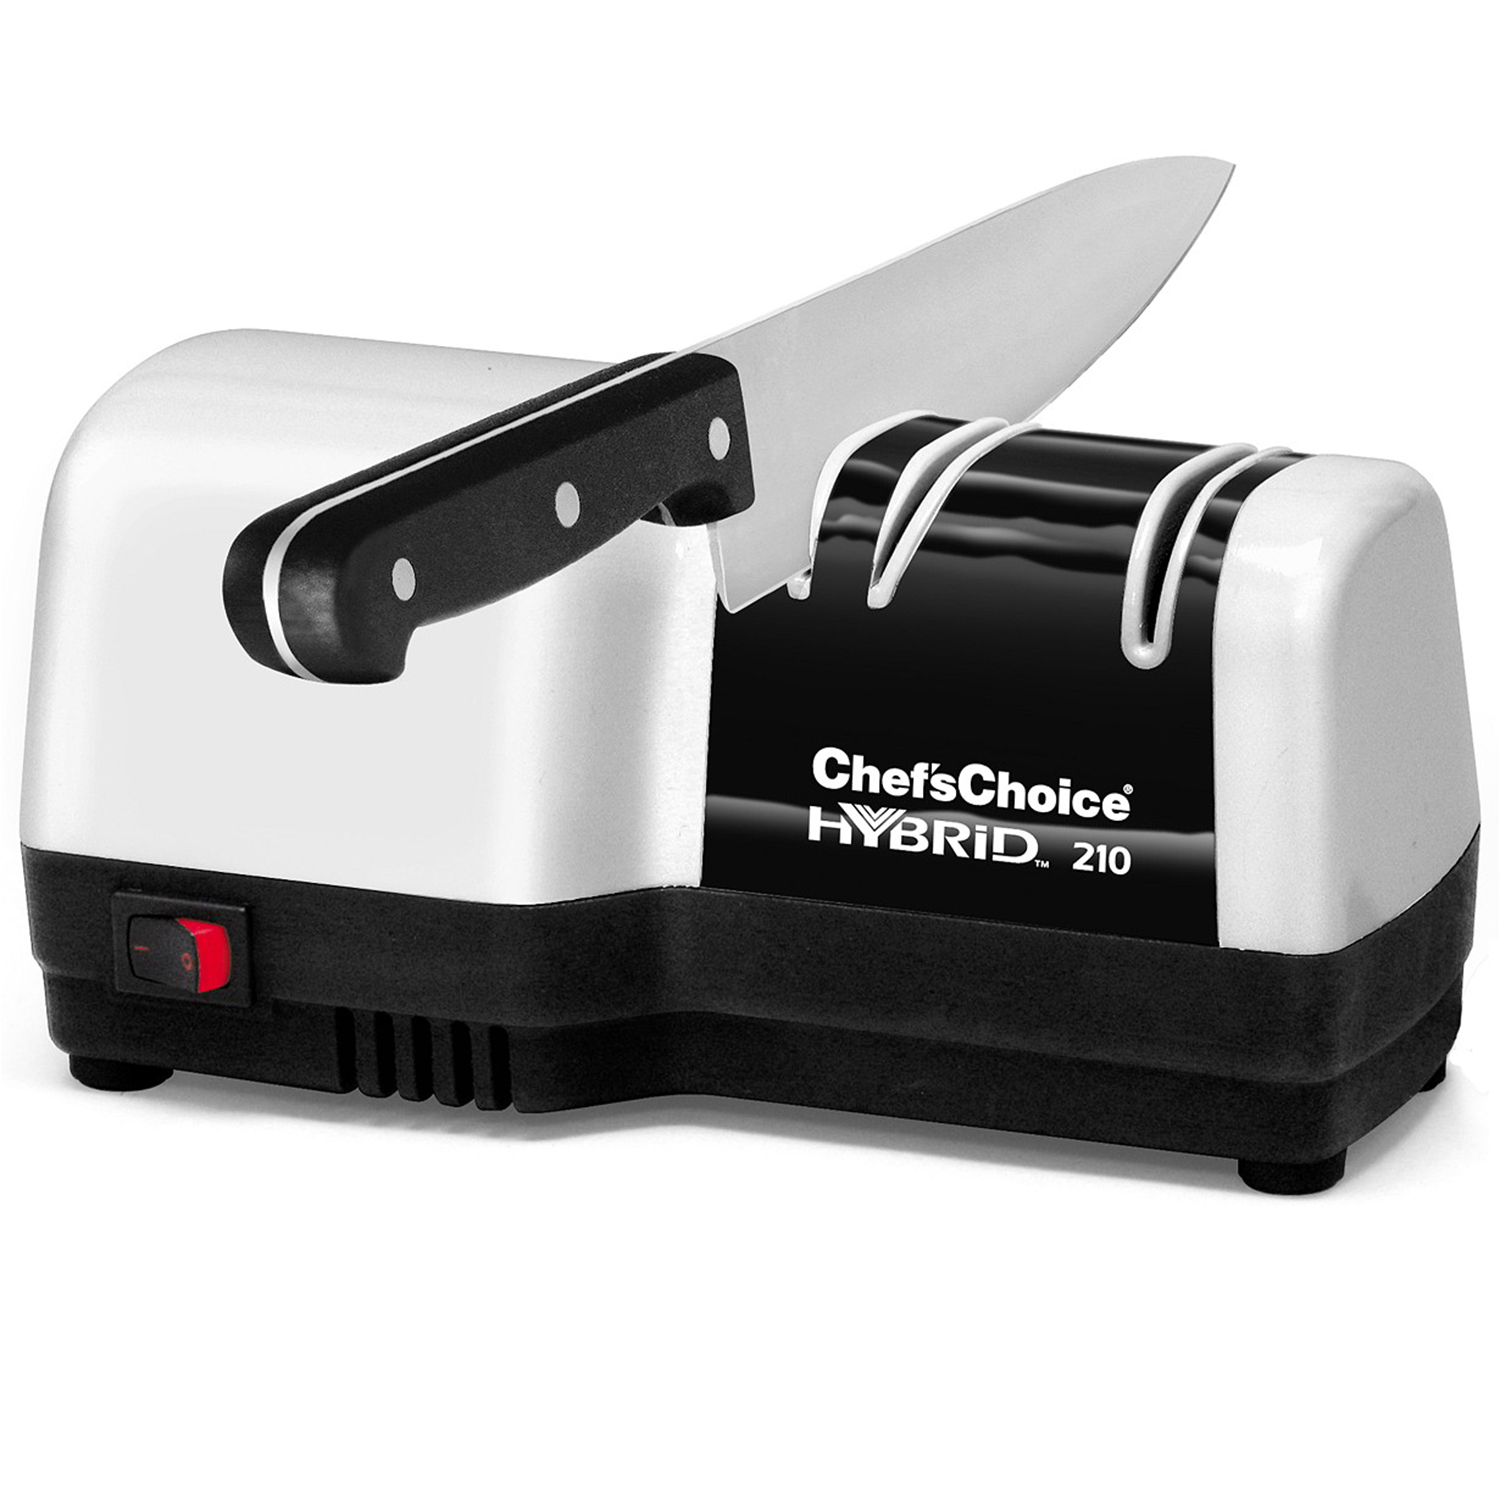 Chef'sChoice Edgecraft Chef's Choice Electric M210 Knife Sharpener